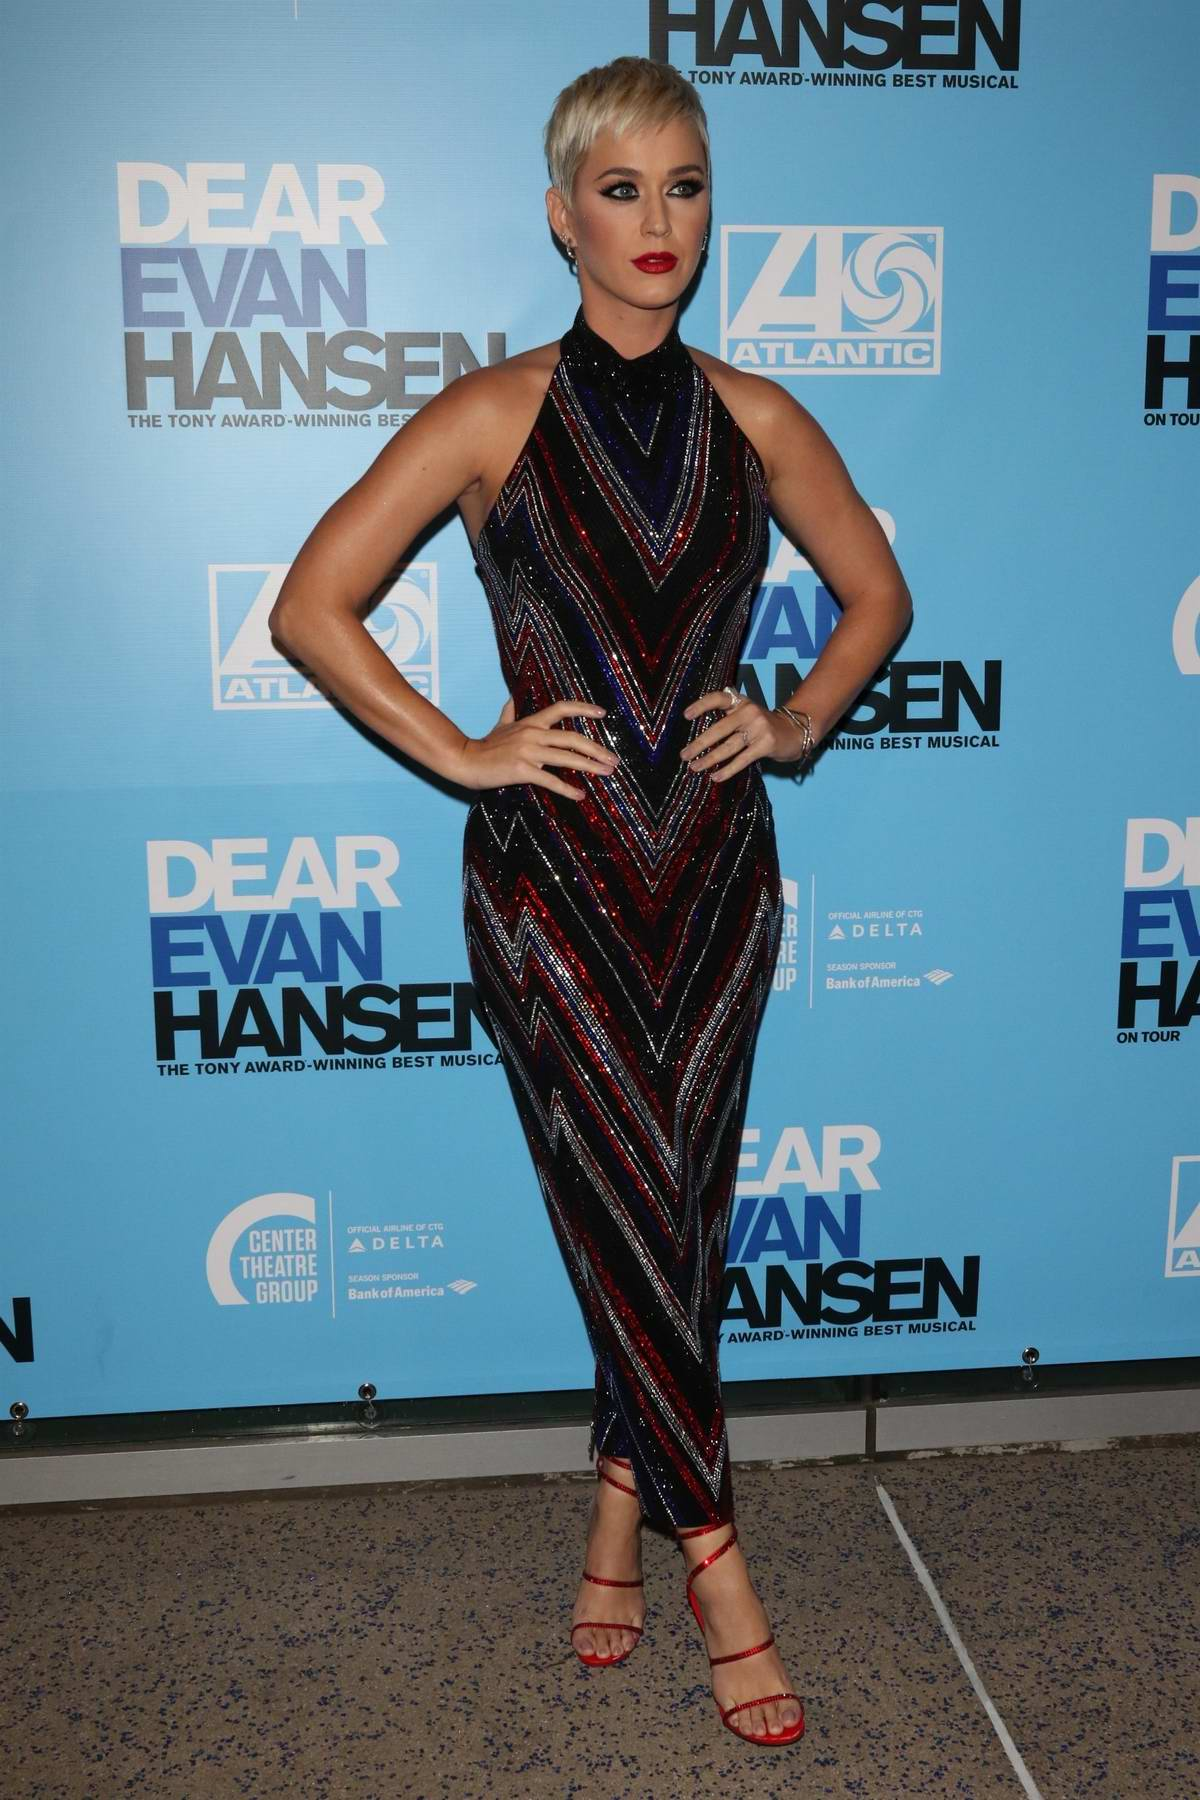 Katy Perry at the Opening Night Performance of 'Dear Evan Hansen' at Ahmanson Theatre in Los Angeles